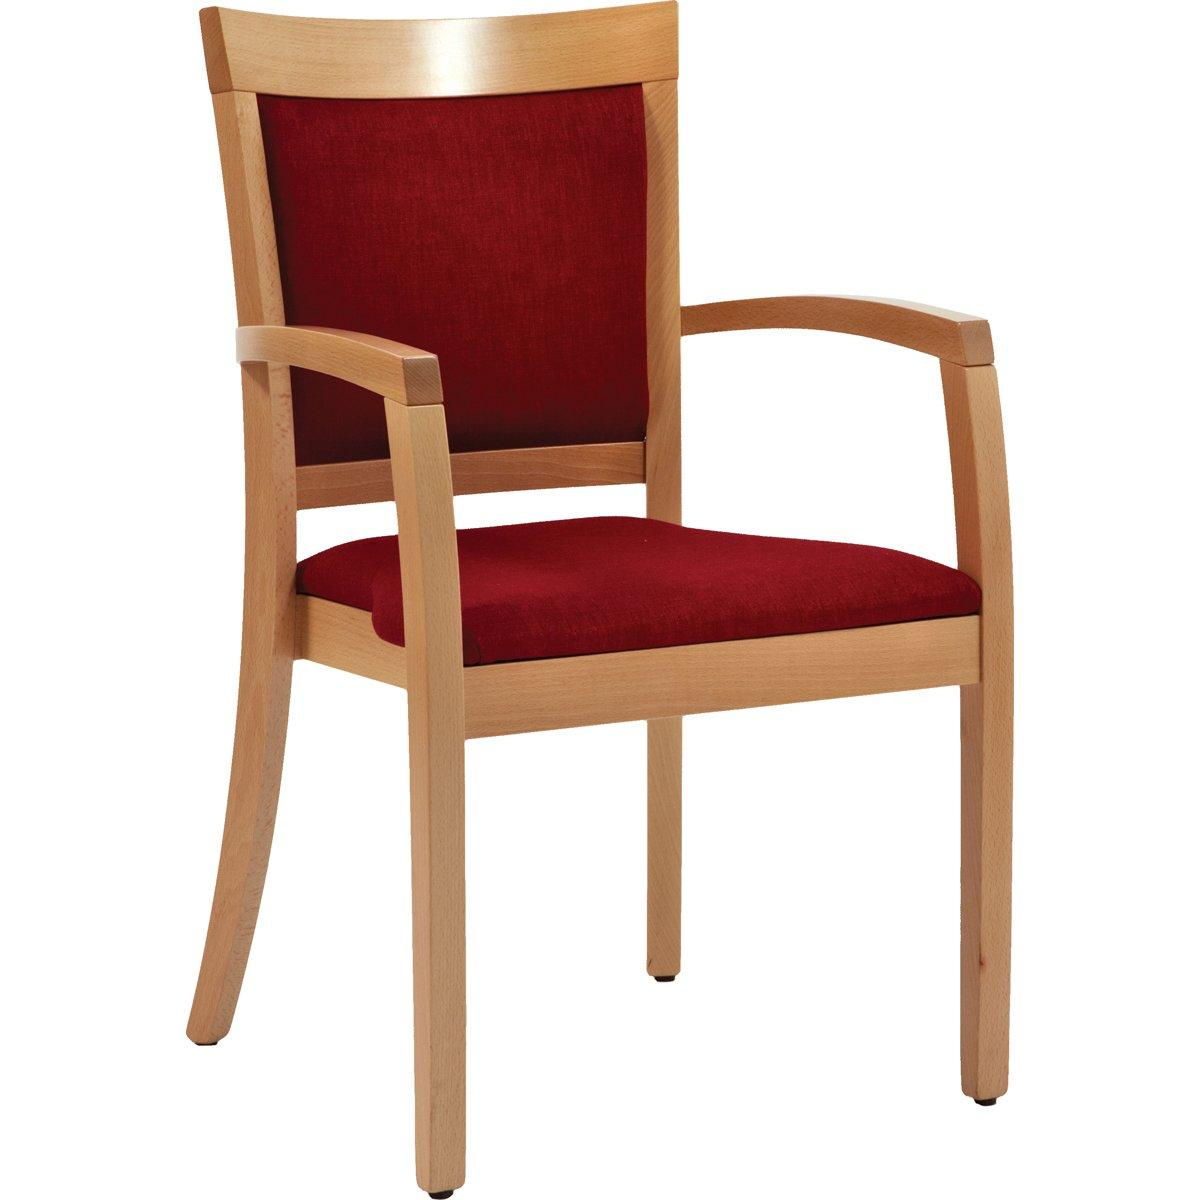 Villette Dining Chairs